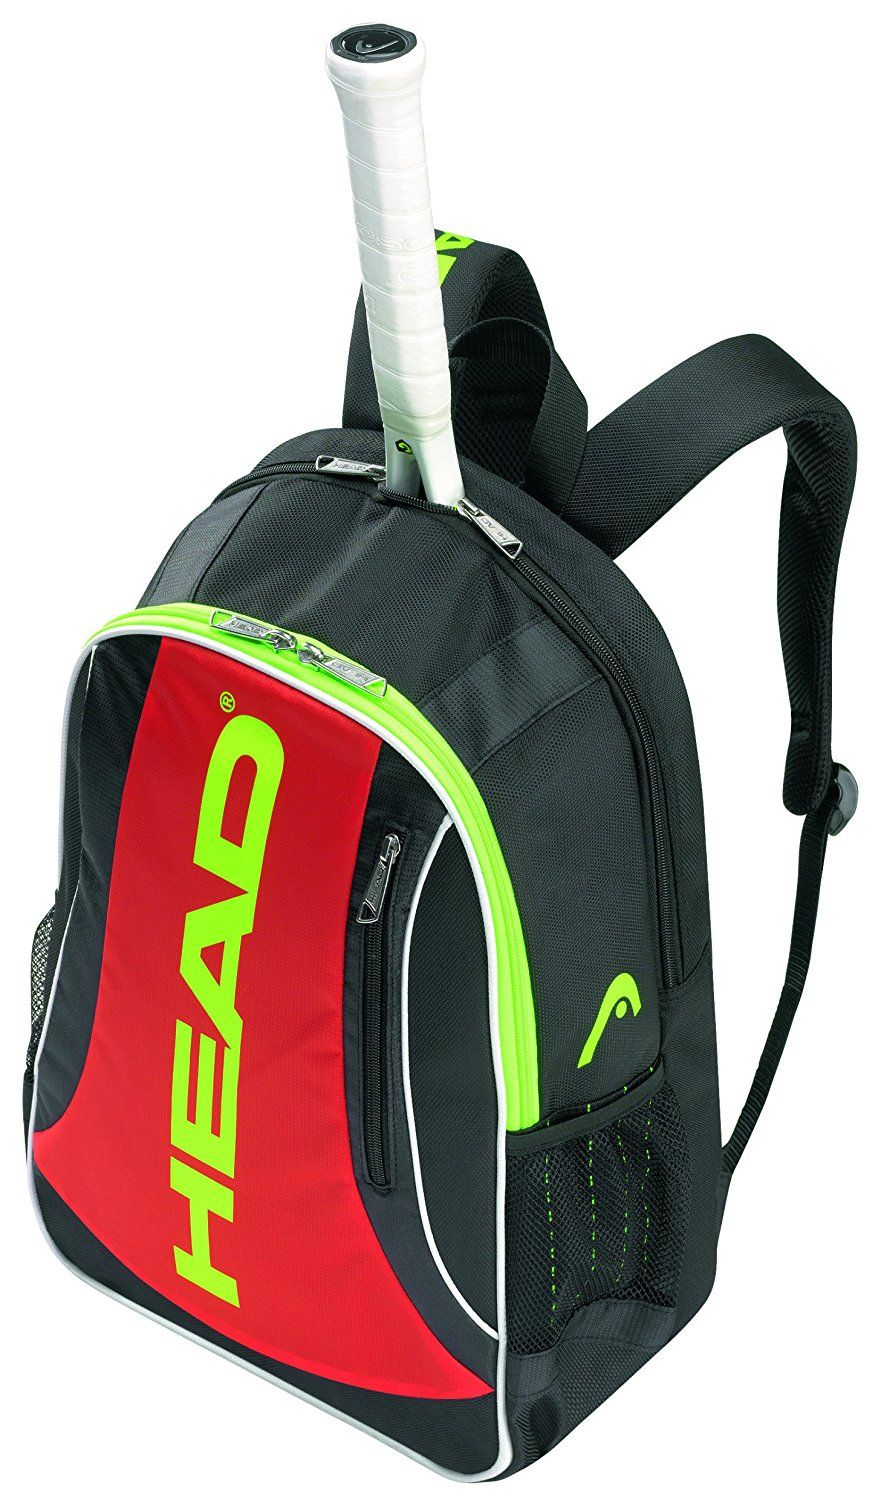 Head Elite Backpack Tennis Bag Black Red     Be sure to check out this e316955efeca1